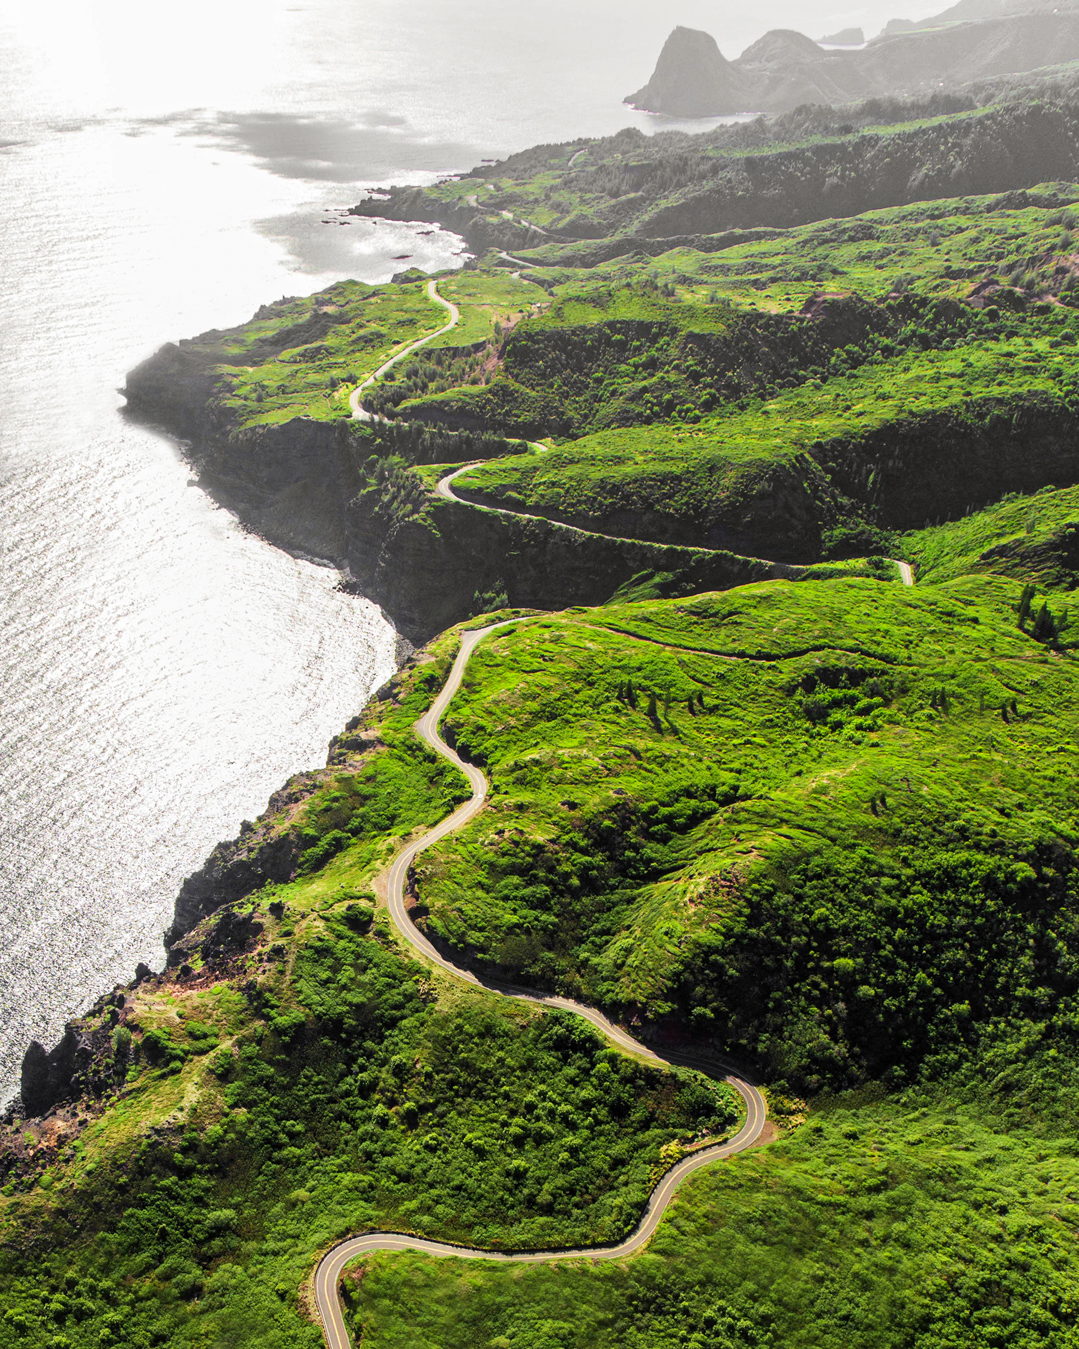 hawaii experience overhead view of lush green coast line